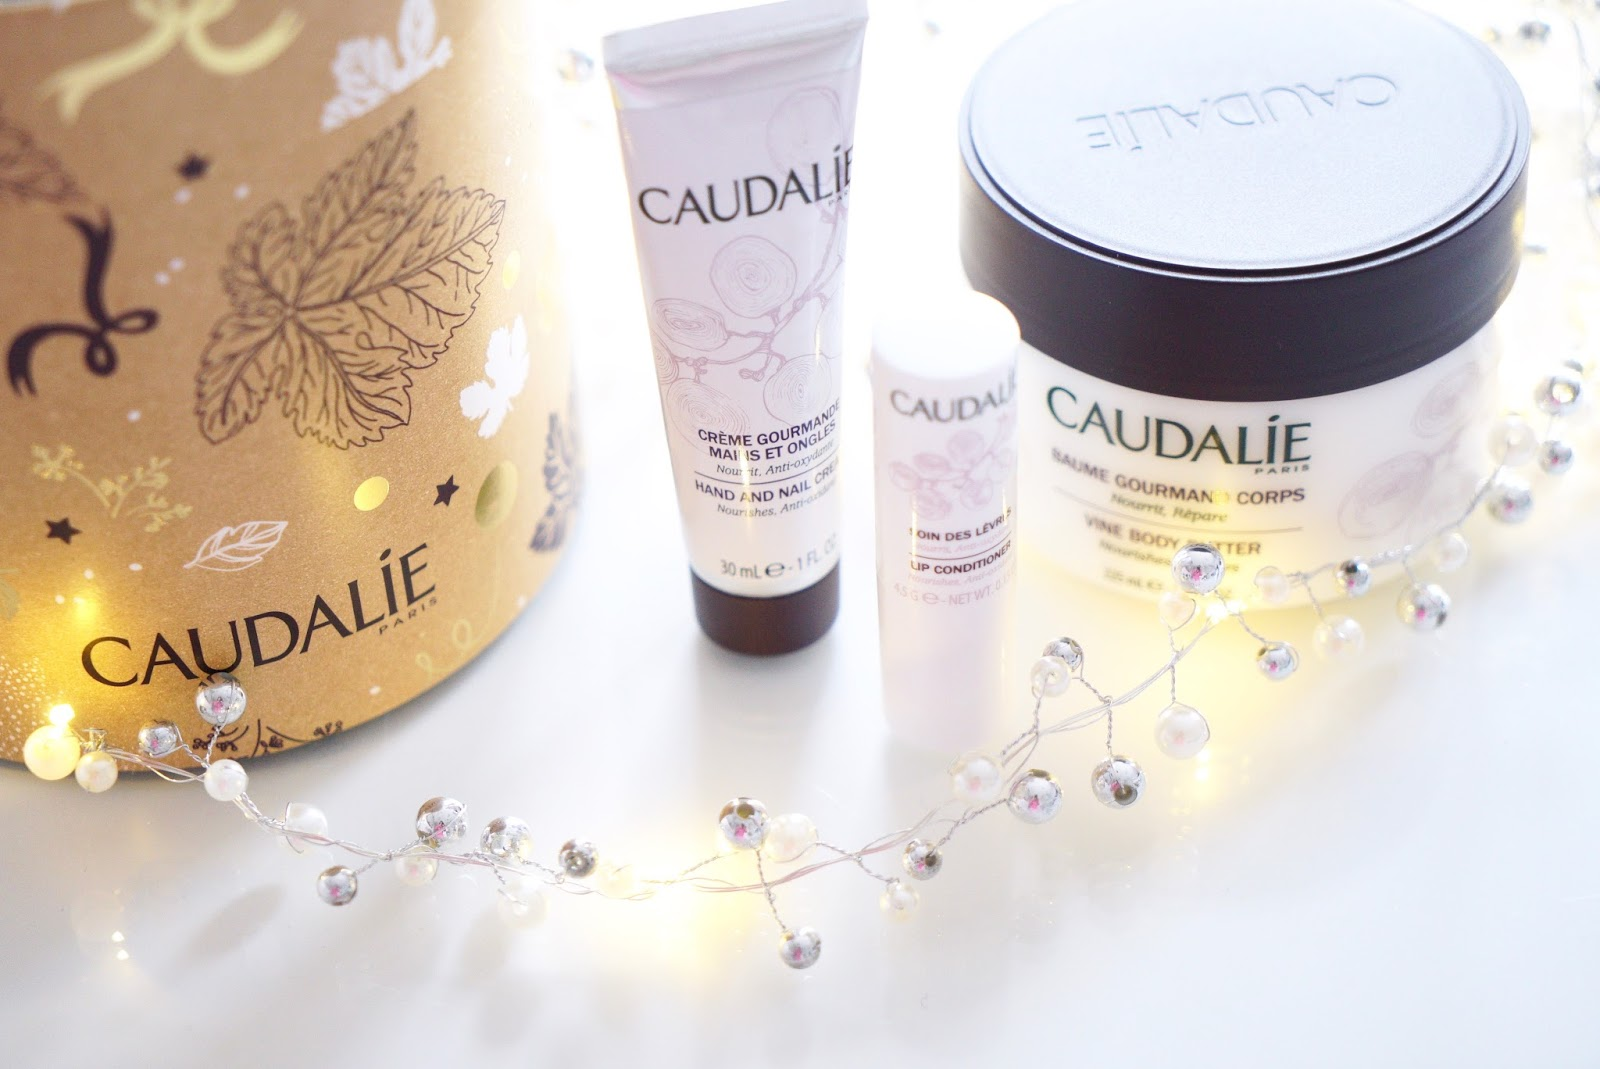 caudalie body gift set